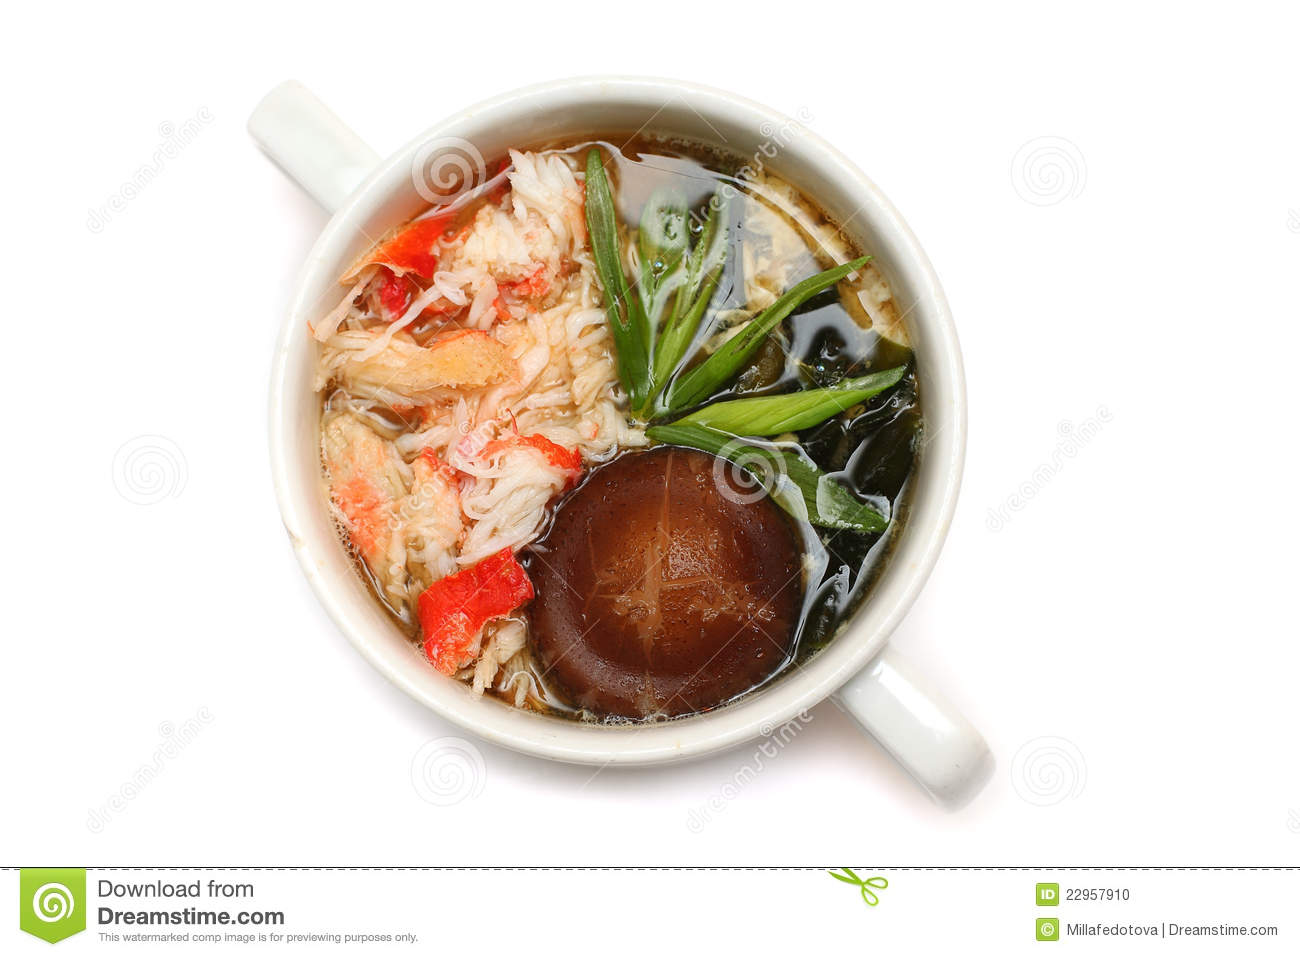 Cuisine japonaise potage de fruits de mer photo stock for Cuisine japonaise